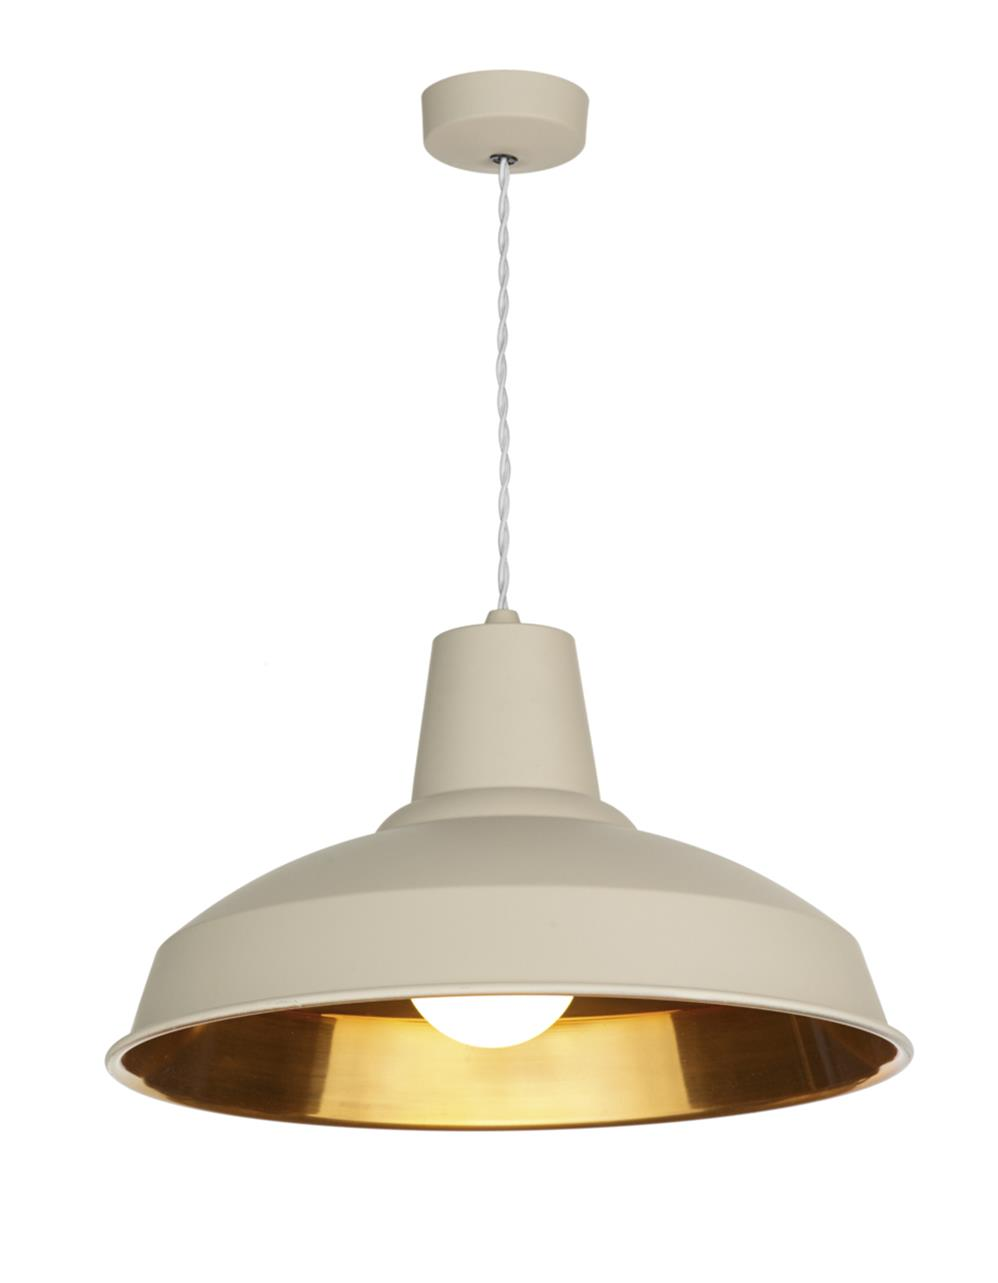 David Hunt Lighting REC0112 Reclamation 1 Light Pendant in Cotswold Cream with Copper Inner